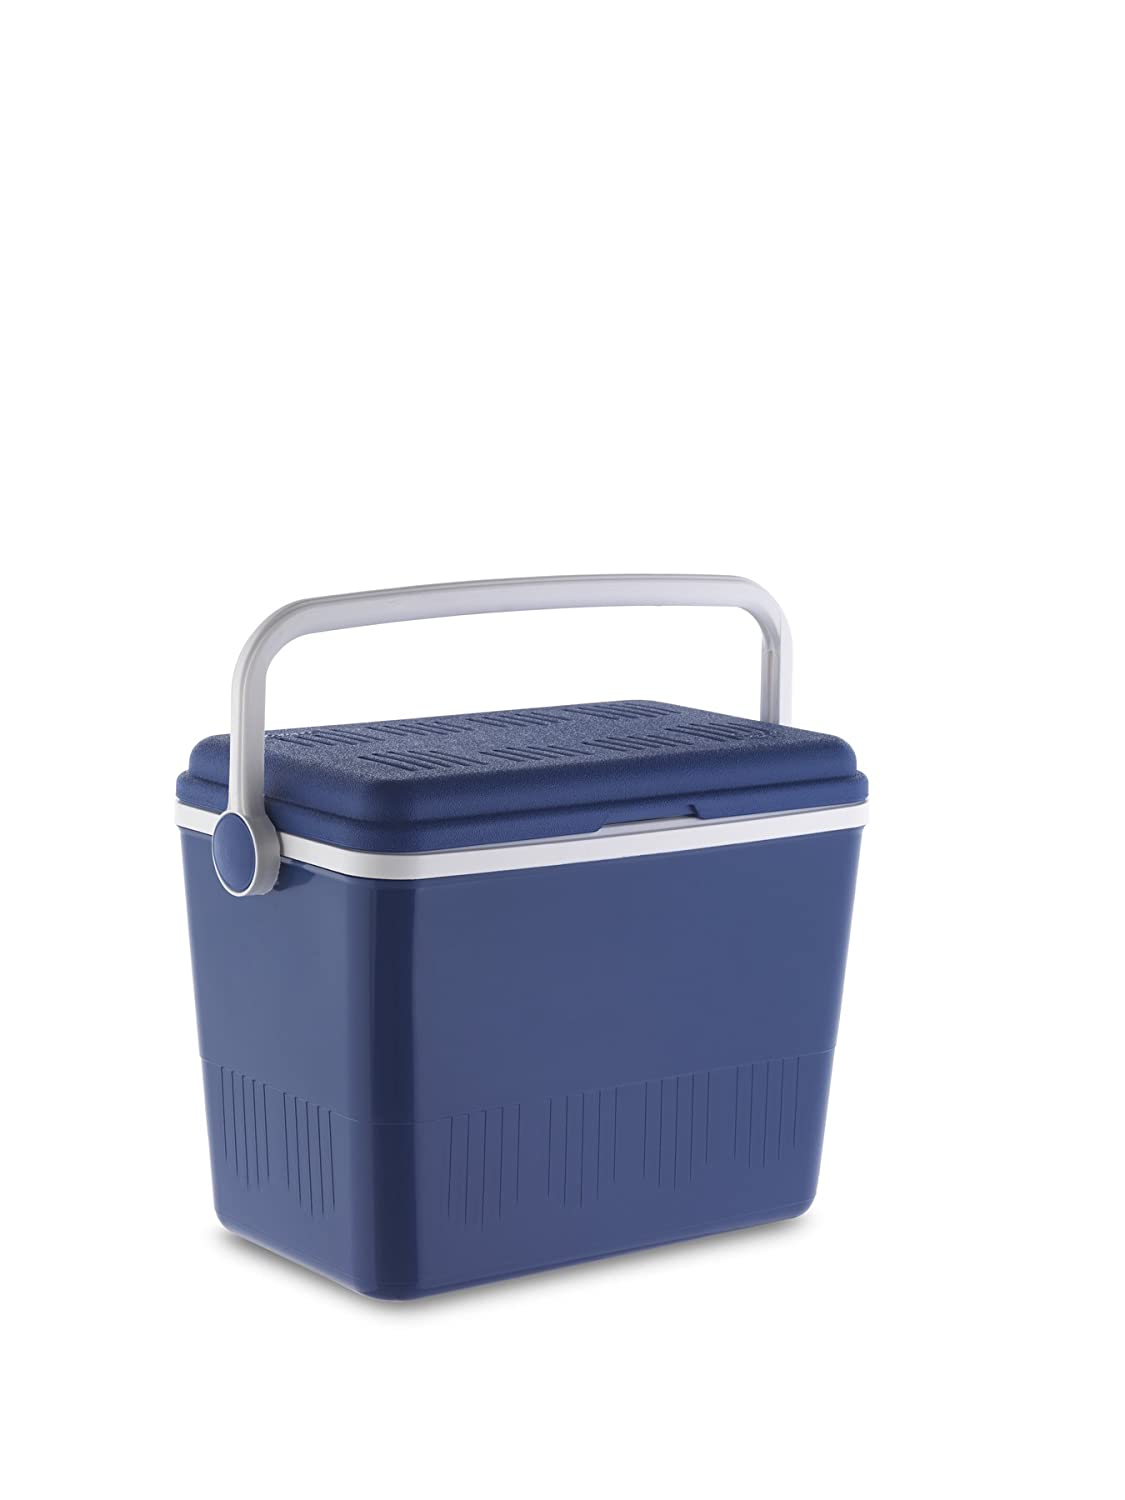 Campos 14400 – Strong Coolbox, Keeps Food Cold, Hermetic Seal 10 l Sp-Berner Plastic Group 13900